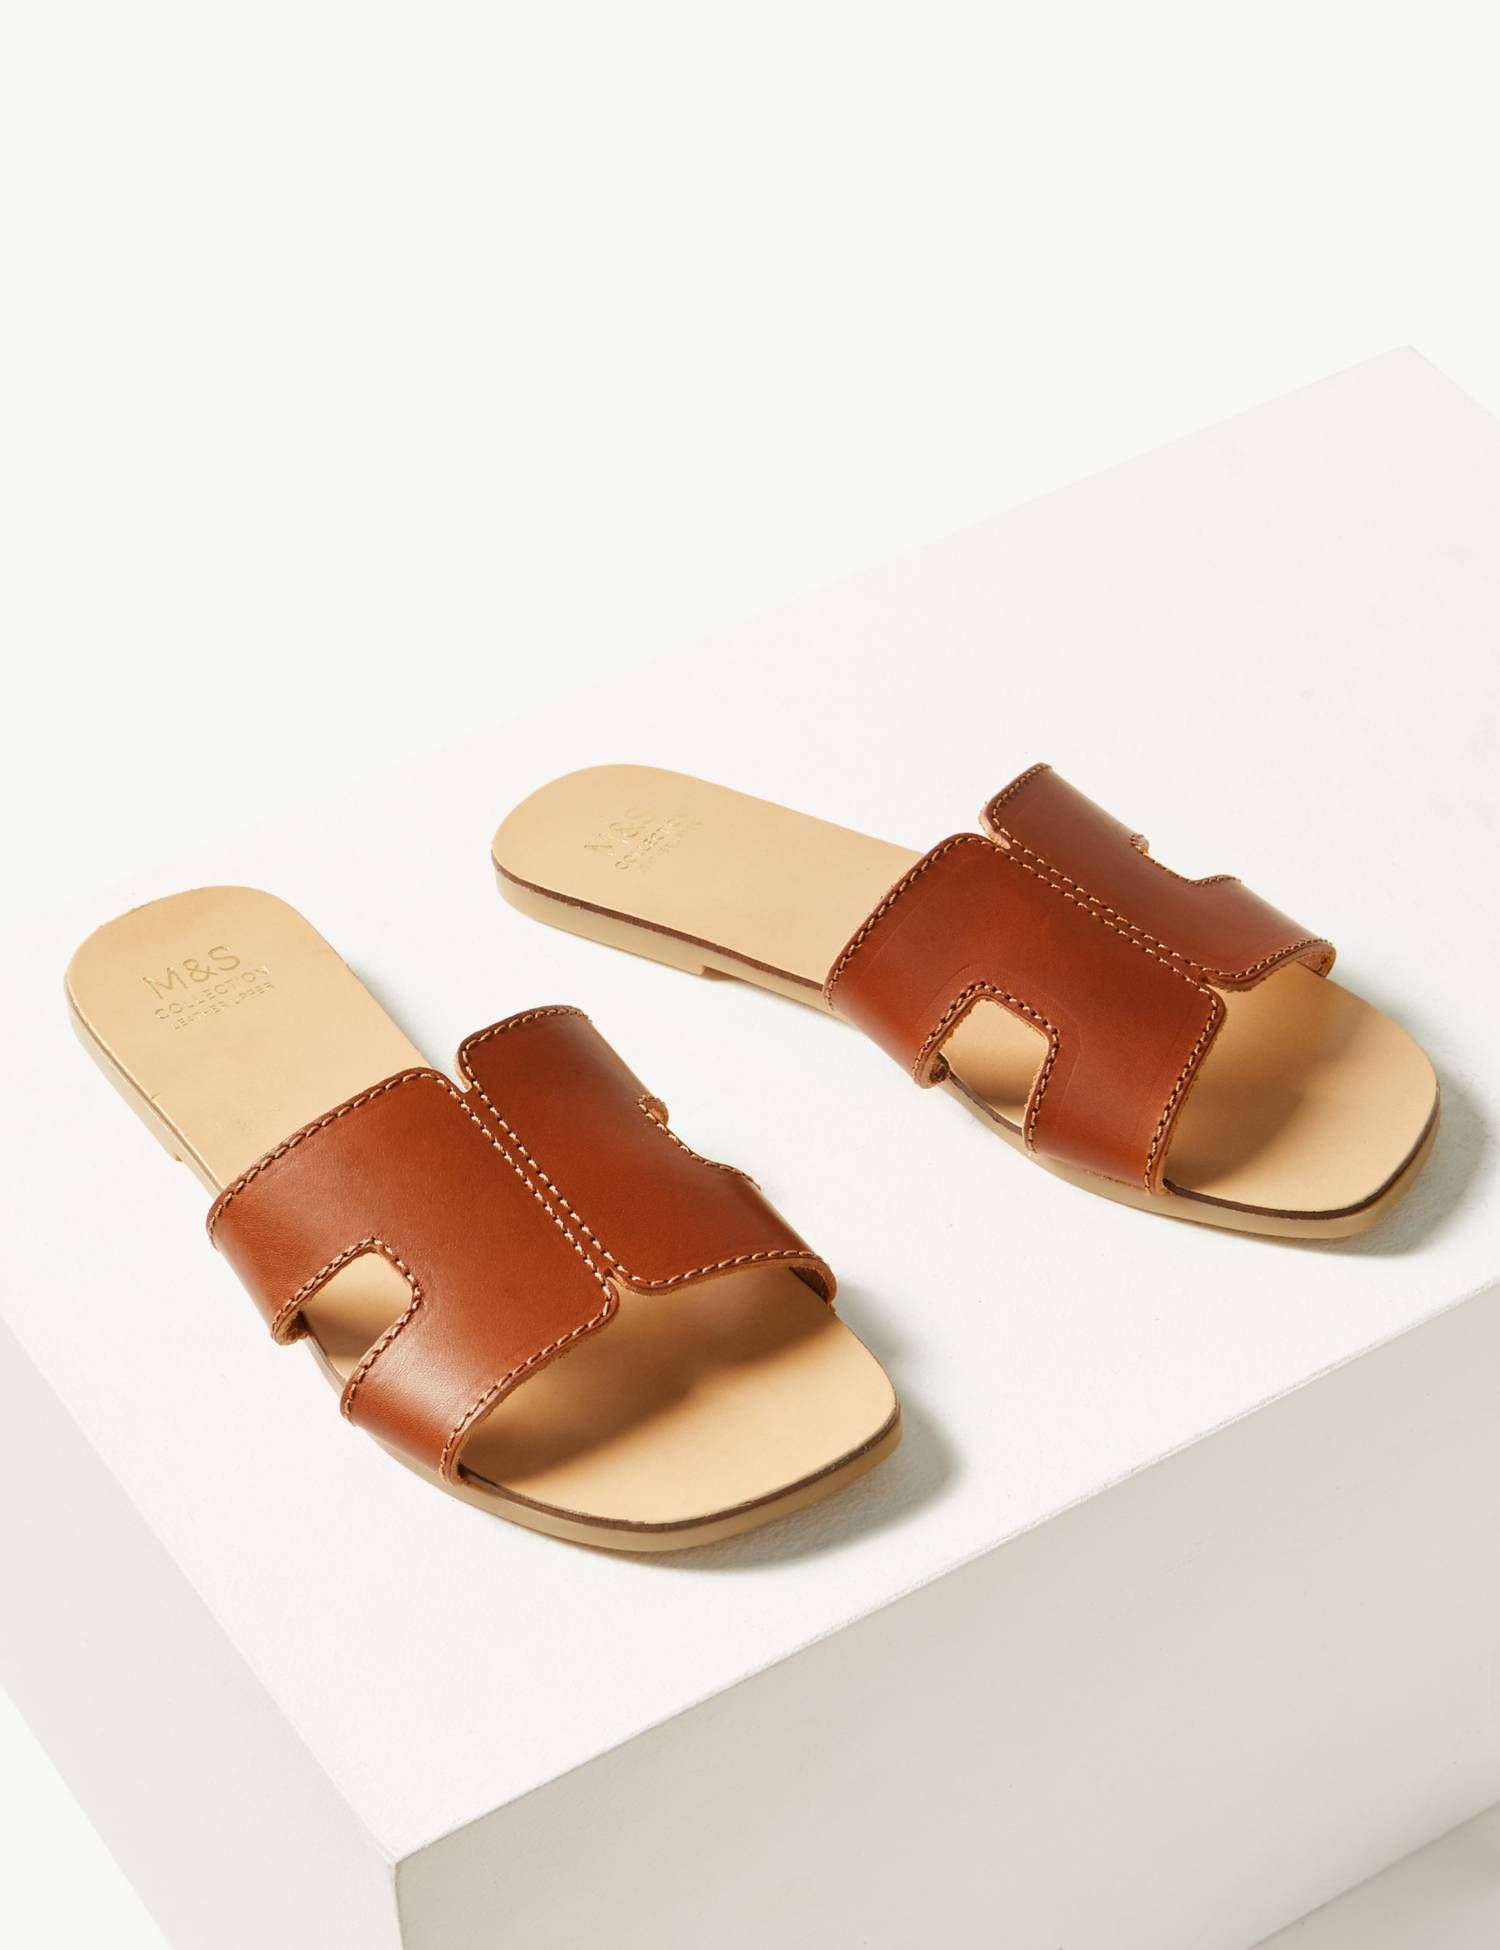 M\u0026S has made the sandals of the summer